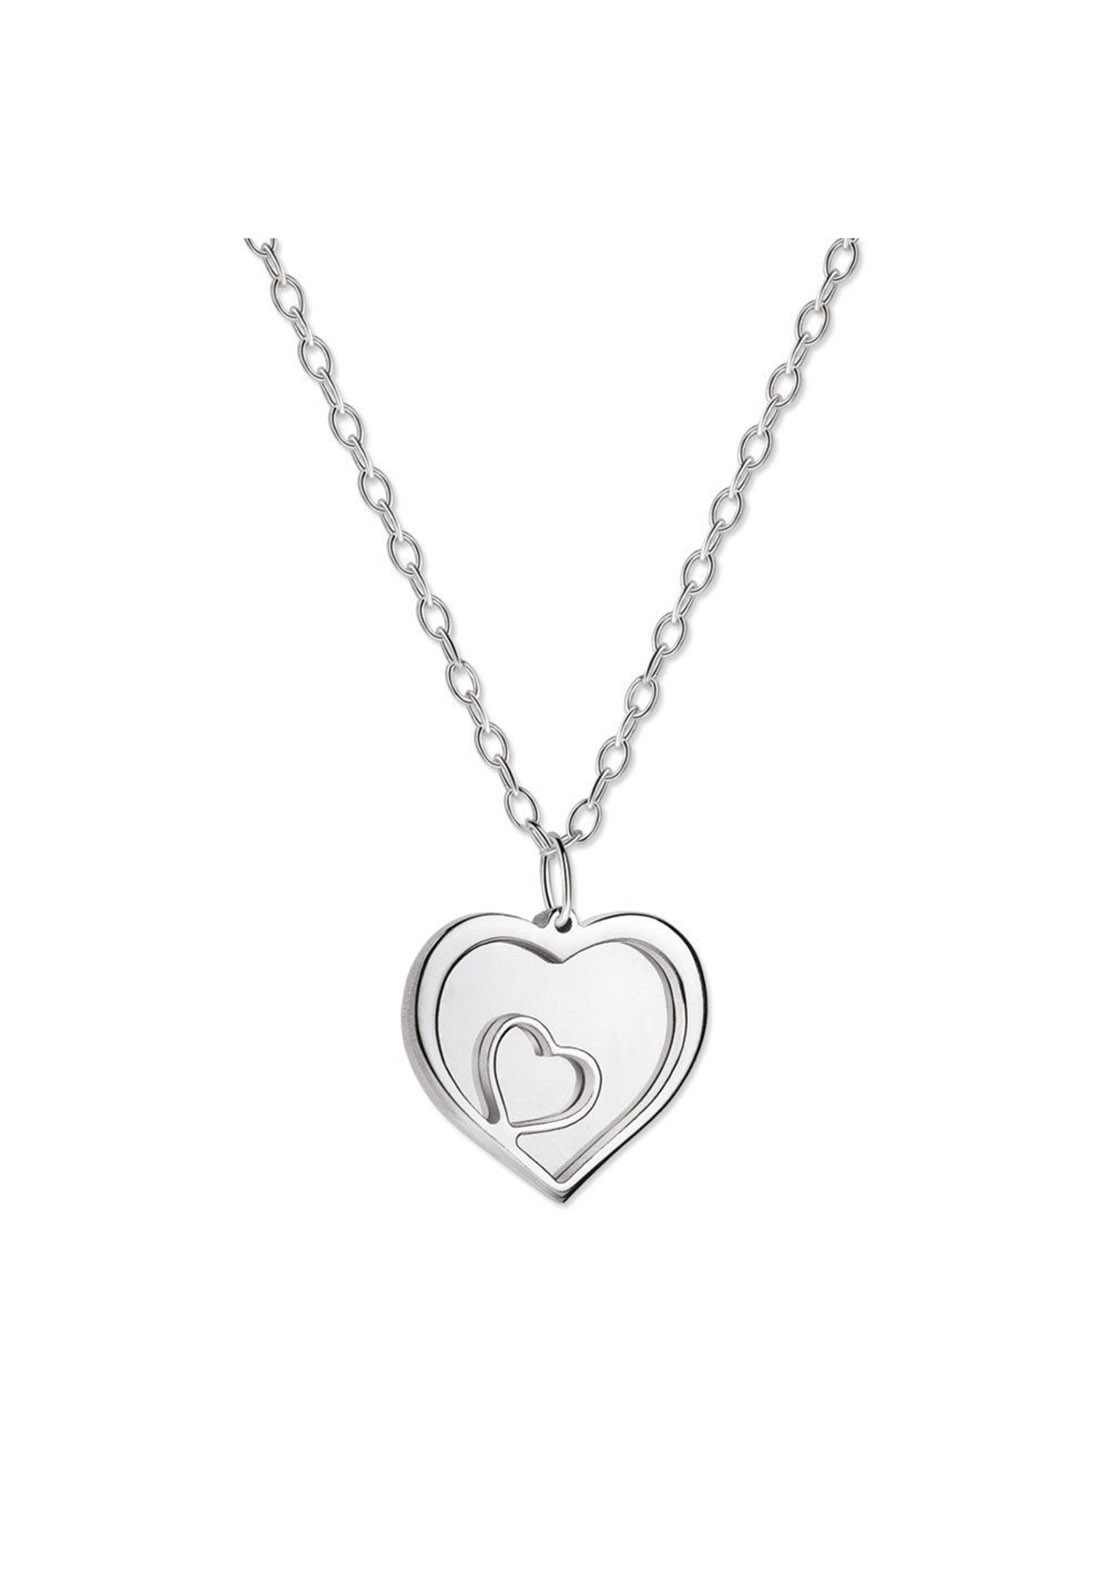 Newbridge Mementos Triple Heart Pendant, Silver